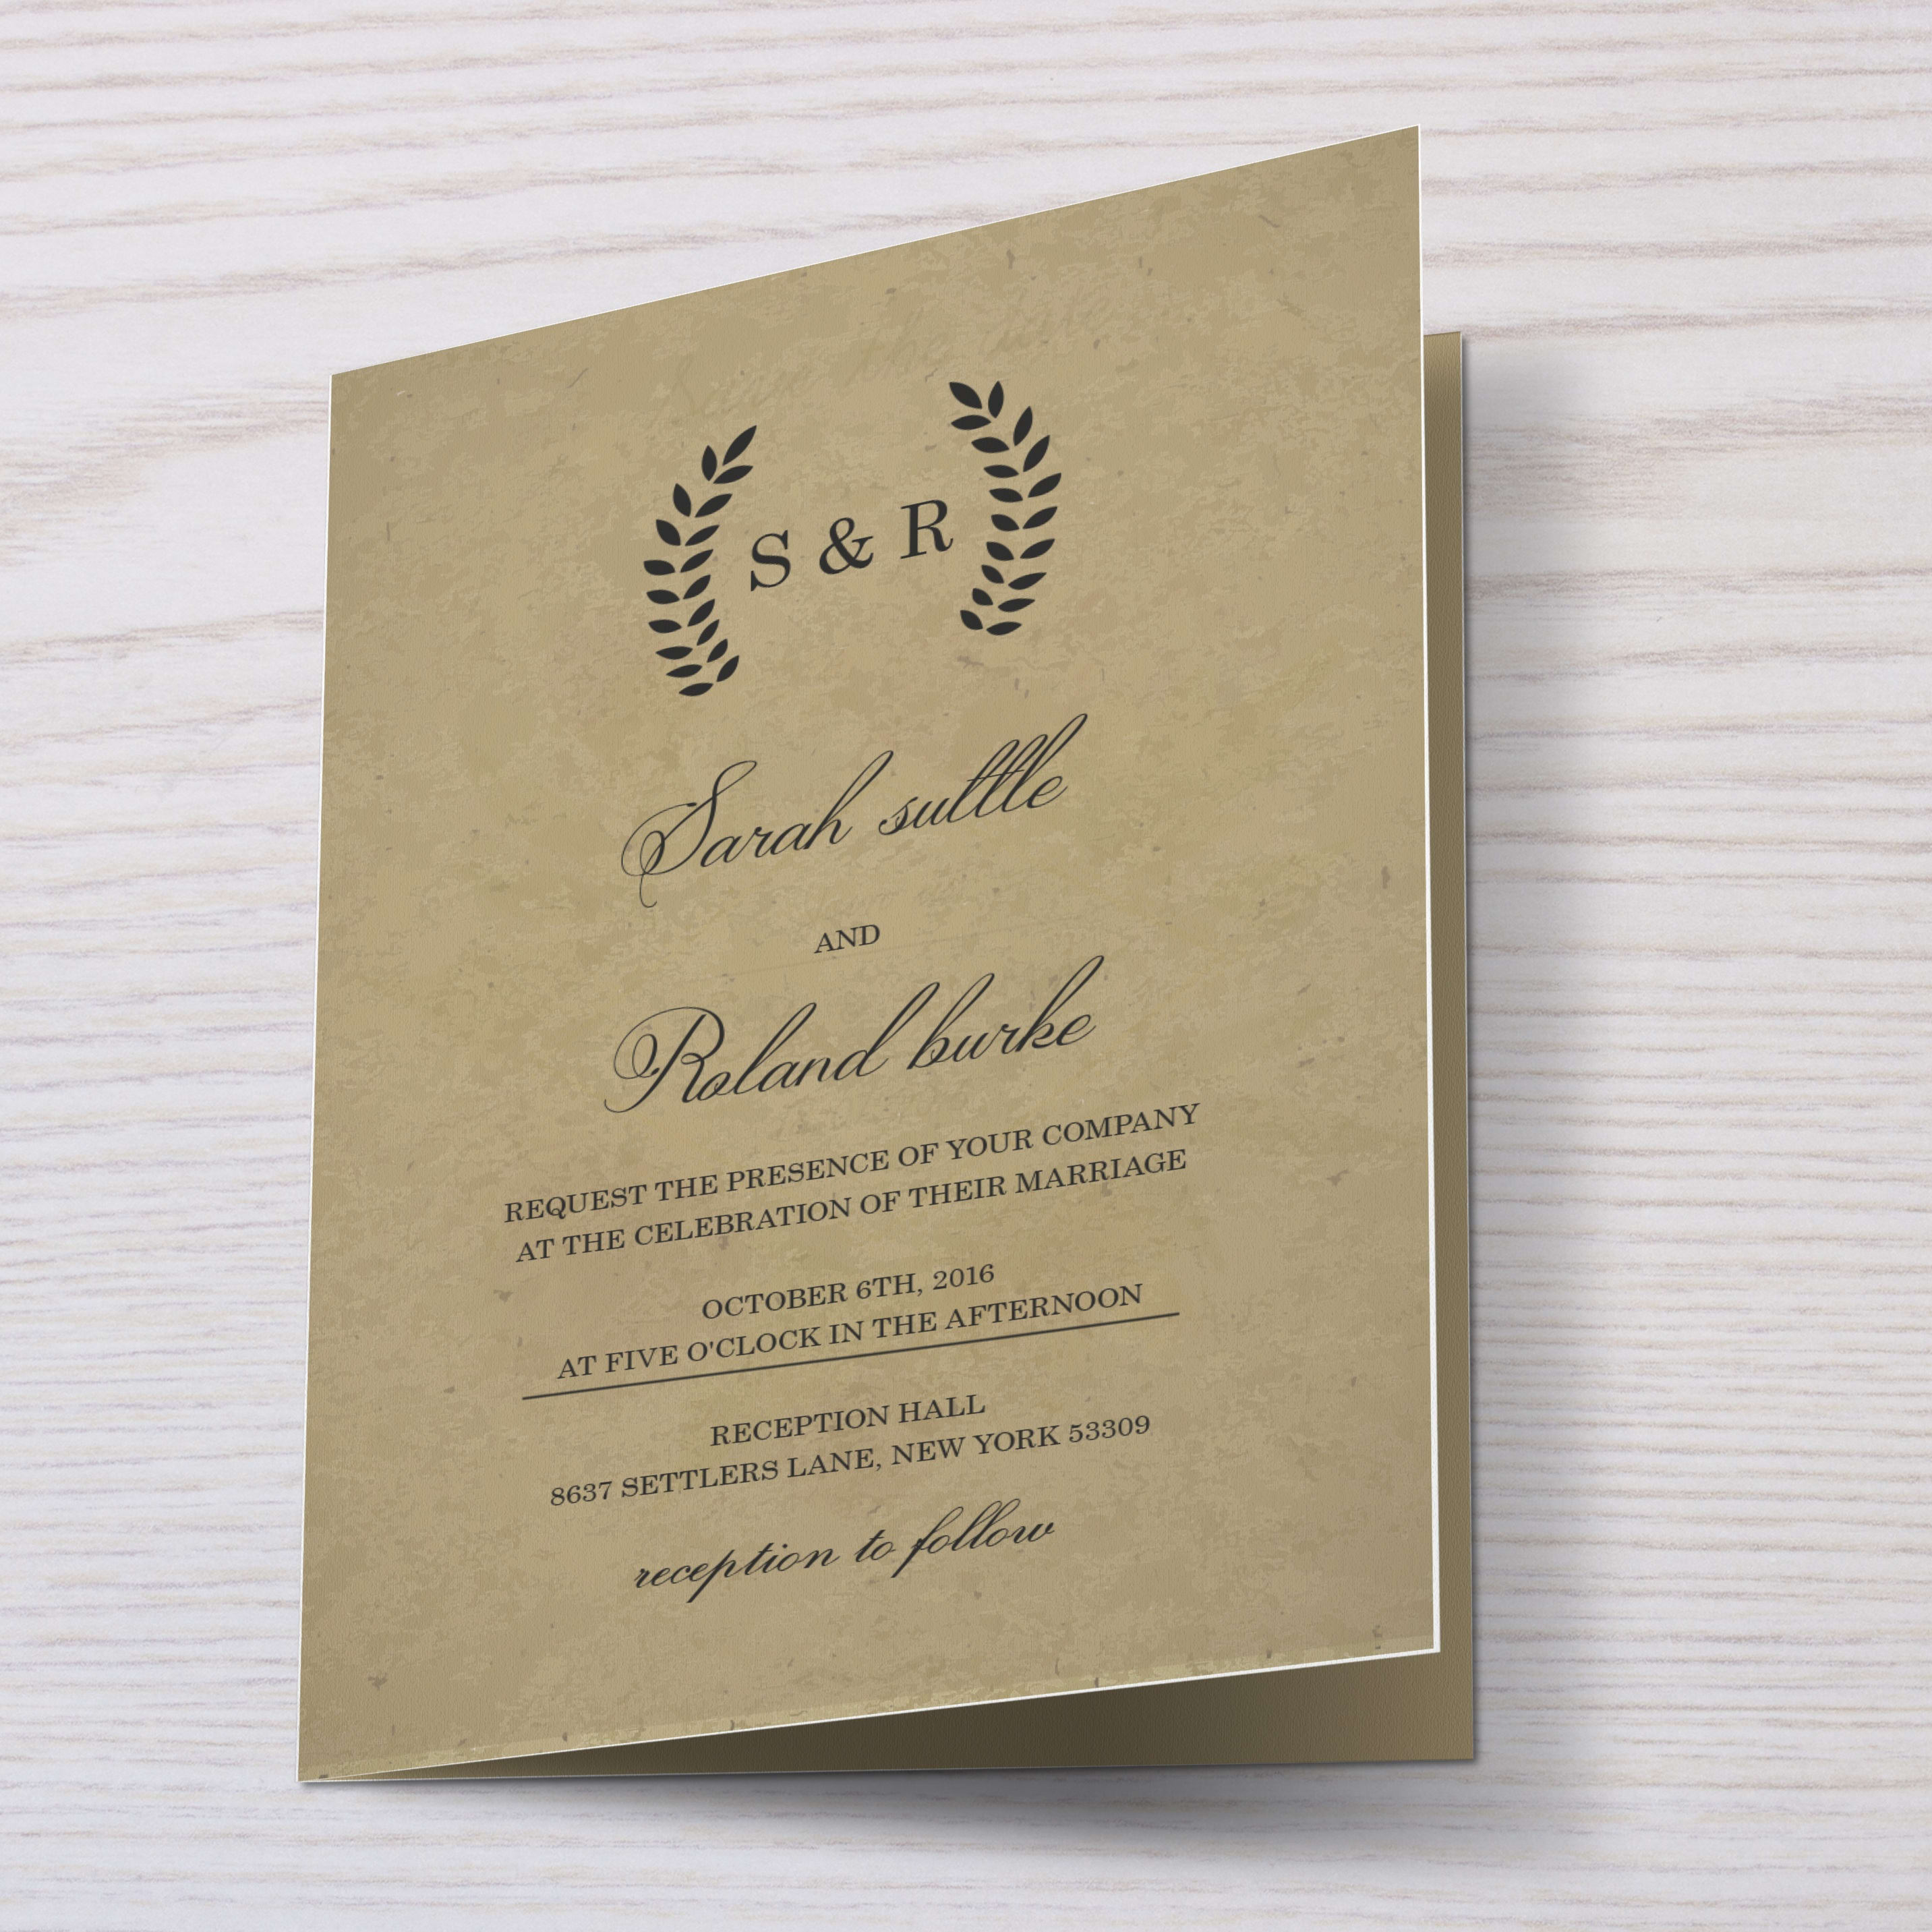 Design your wedding or event invitation card by Blackshovon